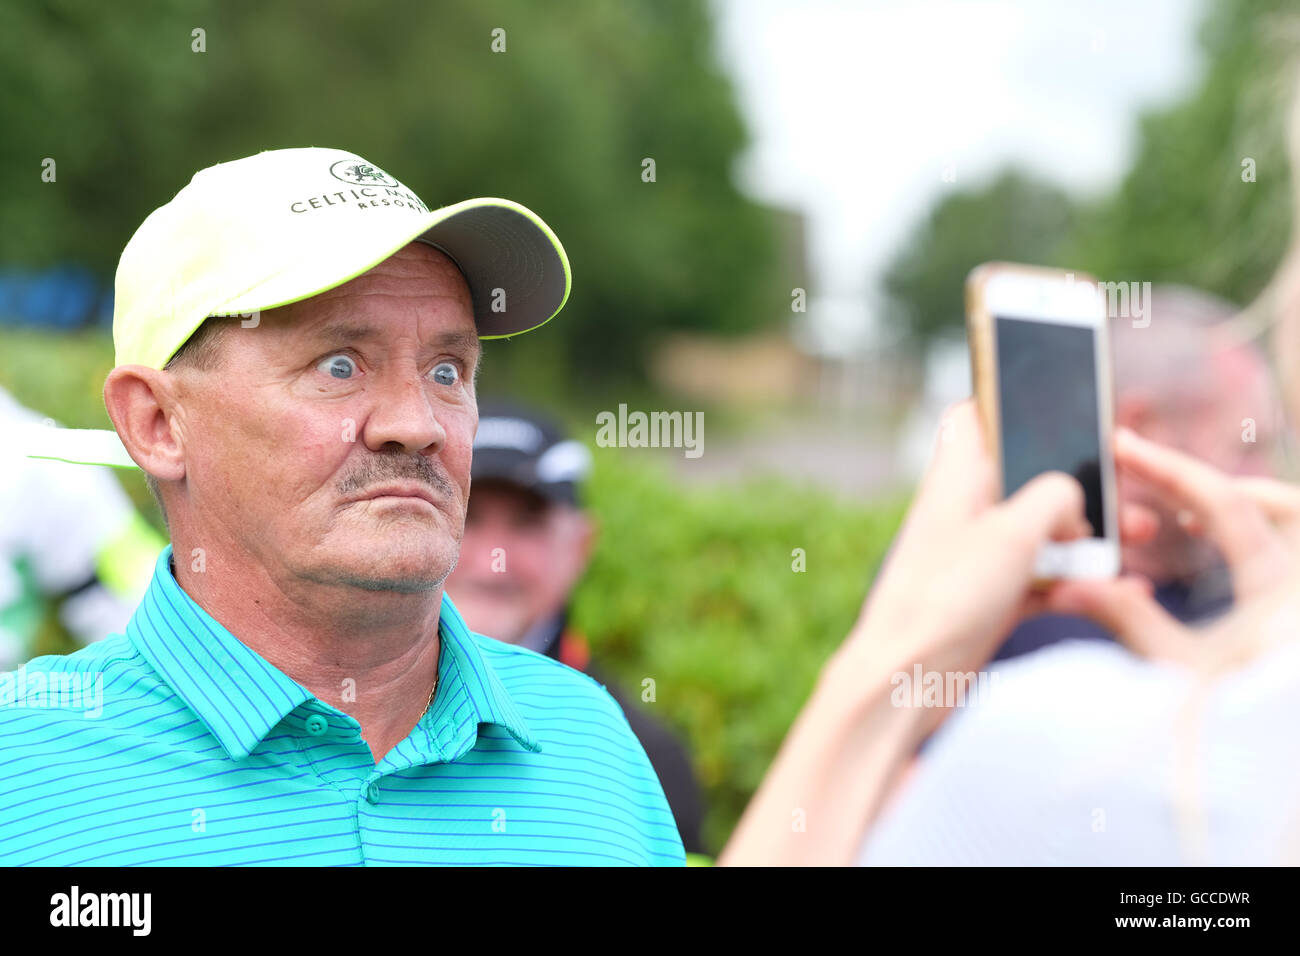 Celtic Manor, Newport, Wales - Saturday 9th July 2016 - The Celebrity Cup golf competition comedian Brendan O'Carroll - Stock Image